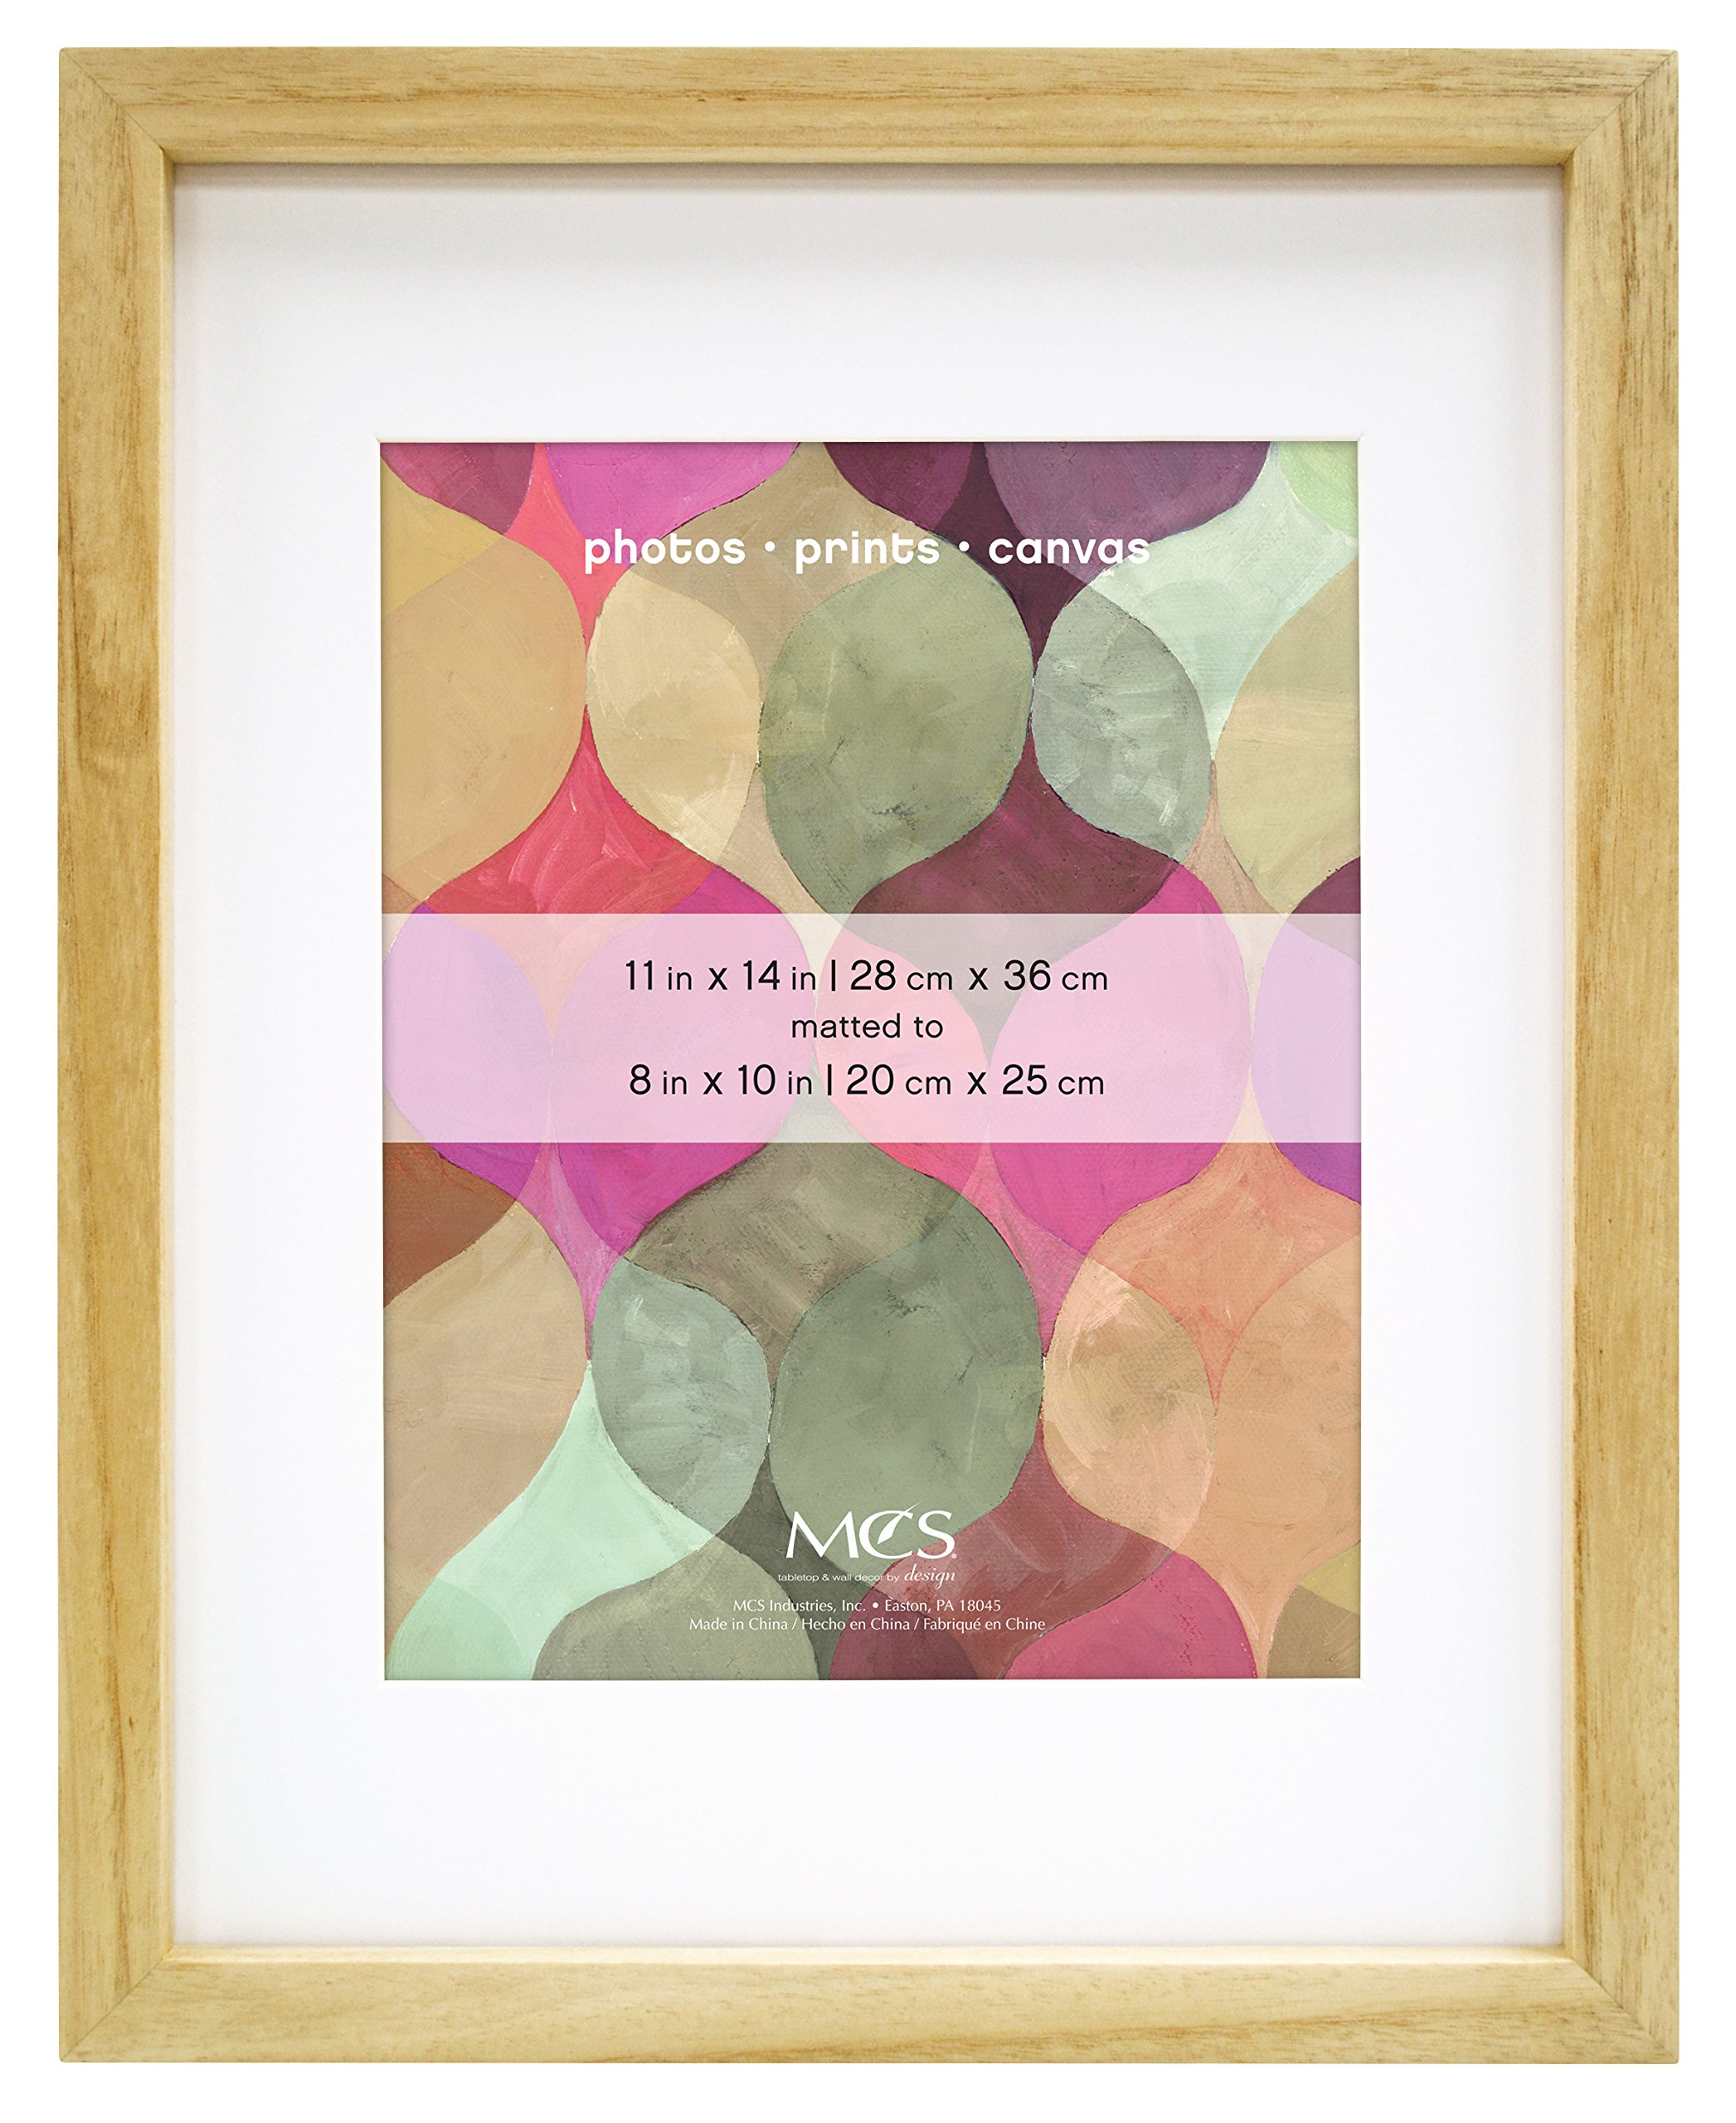 MCS 11x14 Inch Art Frame with 8x10 Inch Mat Opening, Natural Finish (47574)